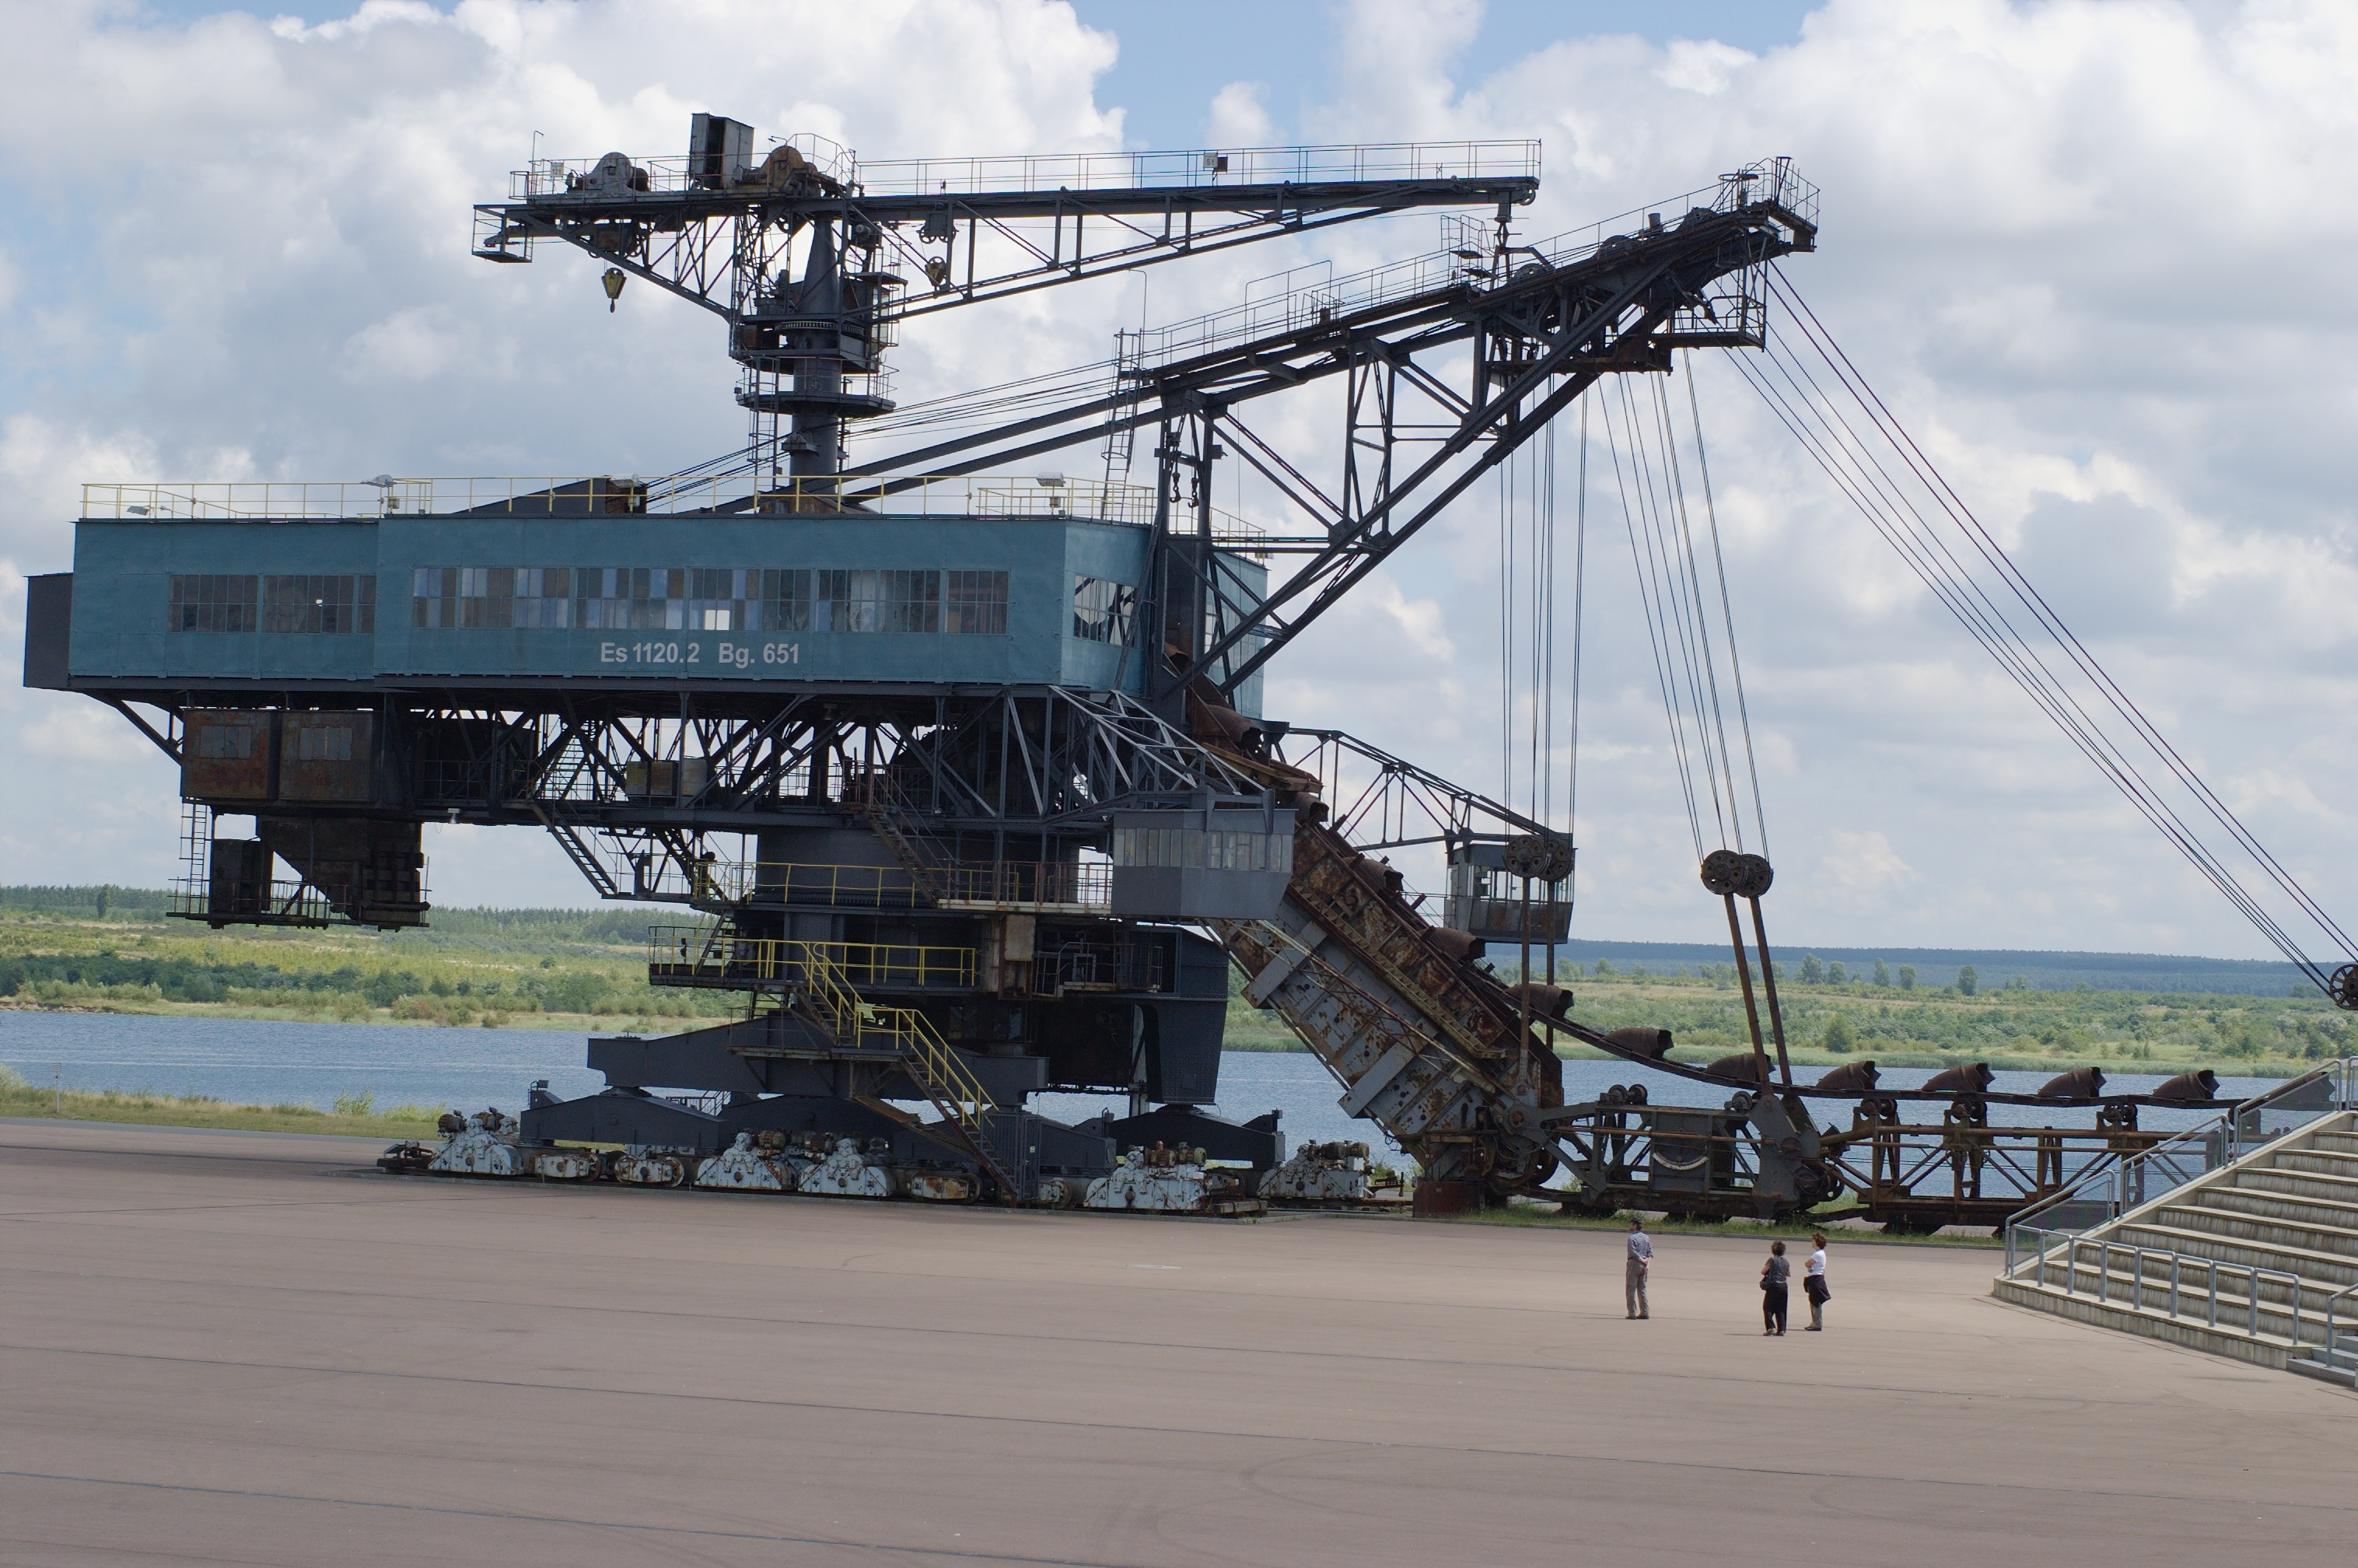 Dipper dredgers, Heavy Equipment Used in Construction